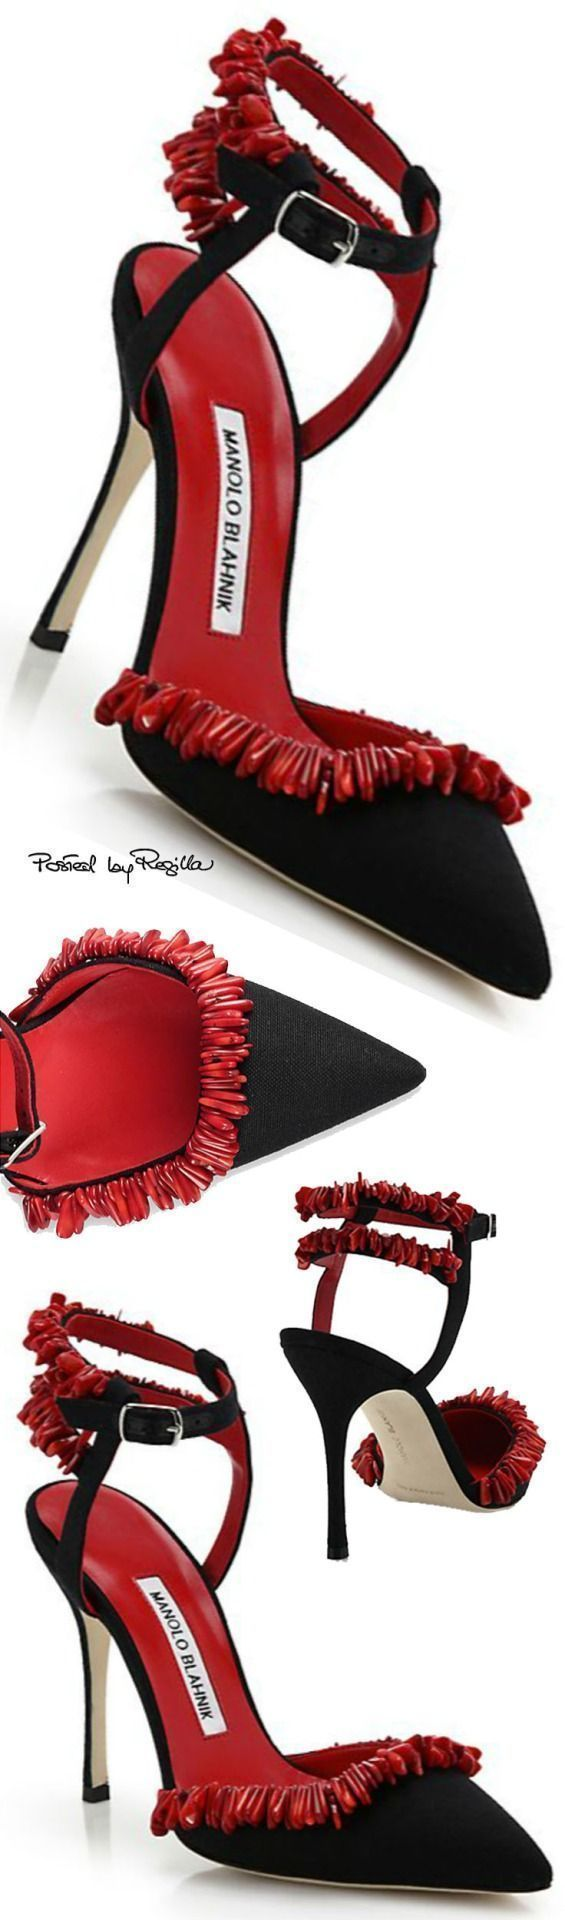 Manolo Blahnik ~ Ankle Strap Pumps, Black w Red Fringe via Regilla #manoloblahnikheelszapatos #manoloblahnikheelsbeautiful #manoloblahnikheelscalifornia #manoloblahnikpumps